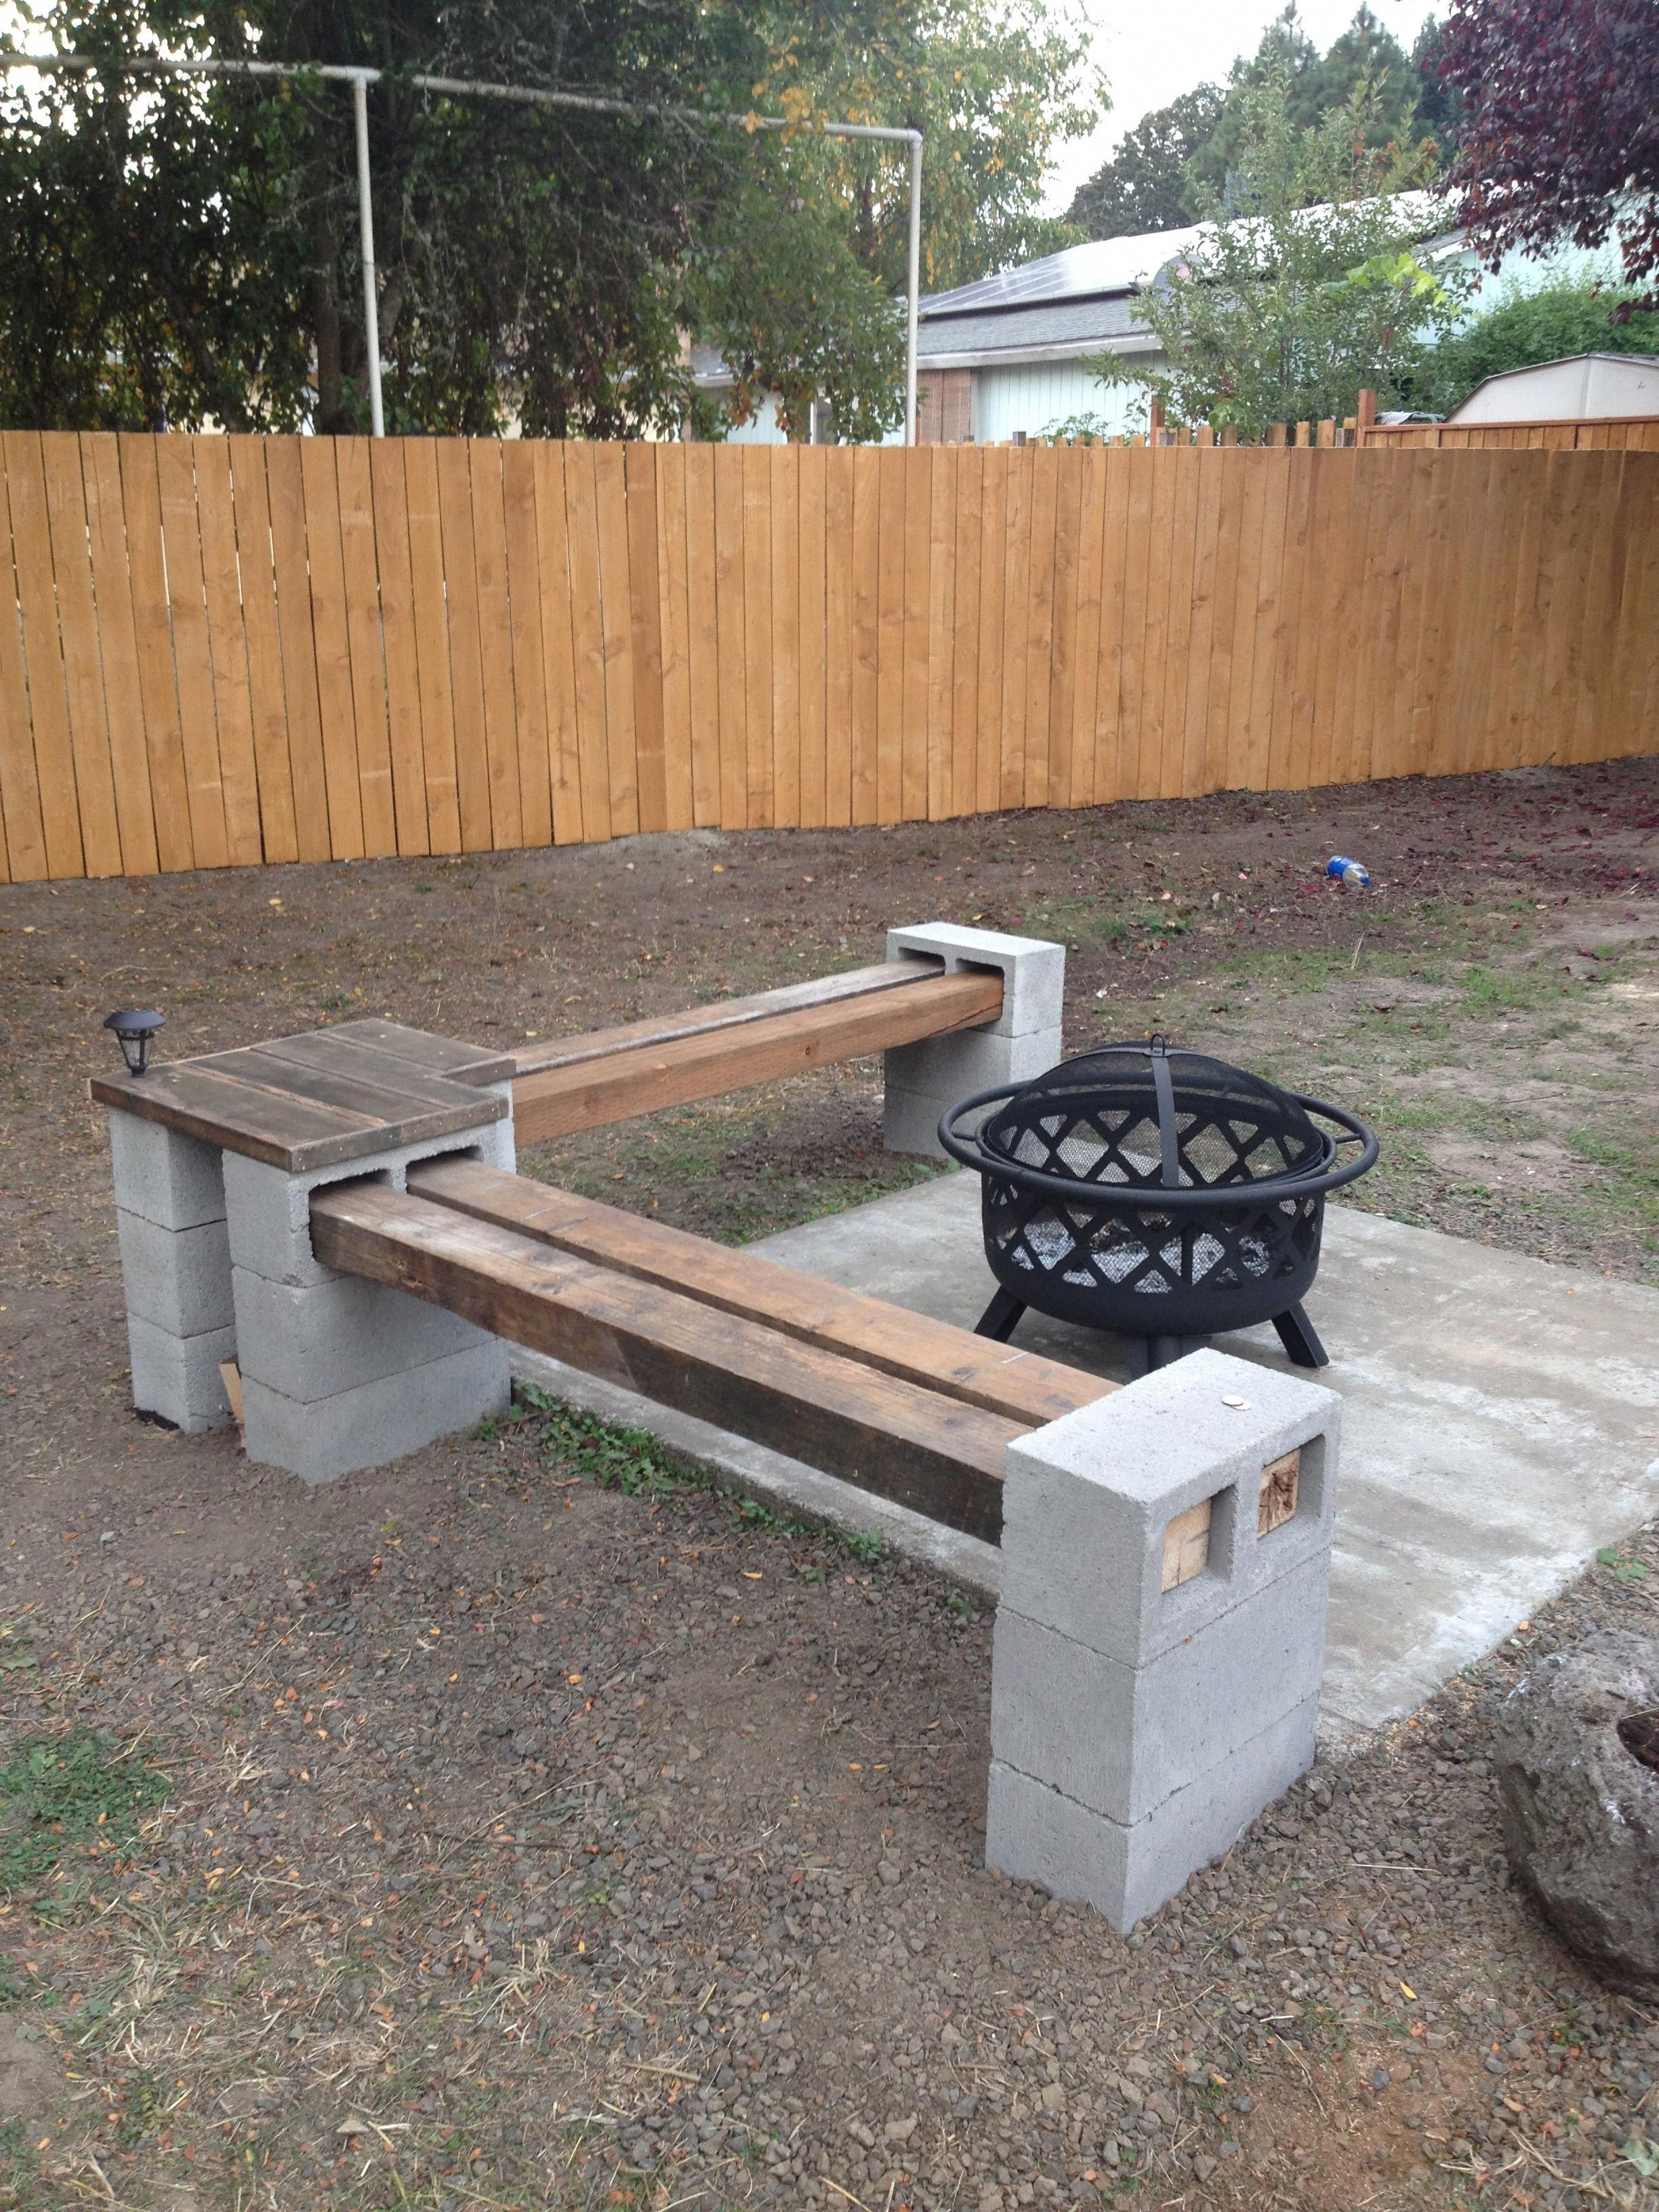 Build My Very Own Fire Pit Bench With Table Firepitfurniture Backyard Fire Cheap Fire Pit Fire Pit Backyard